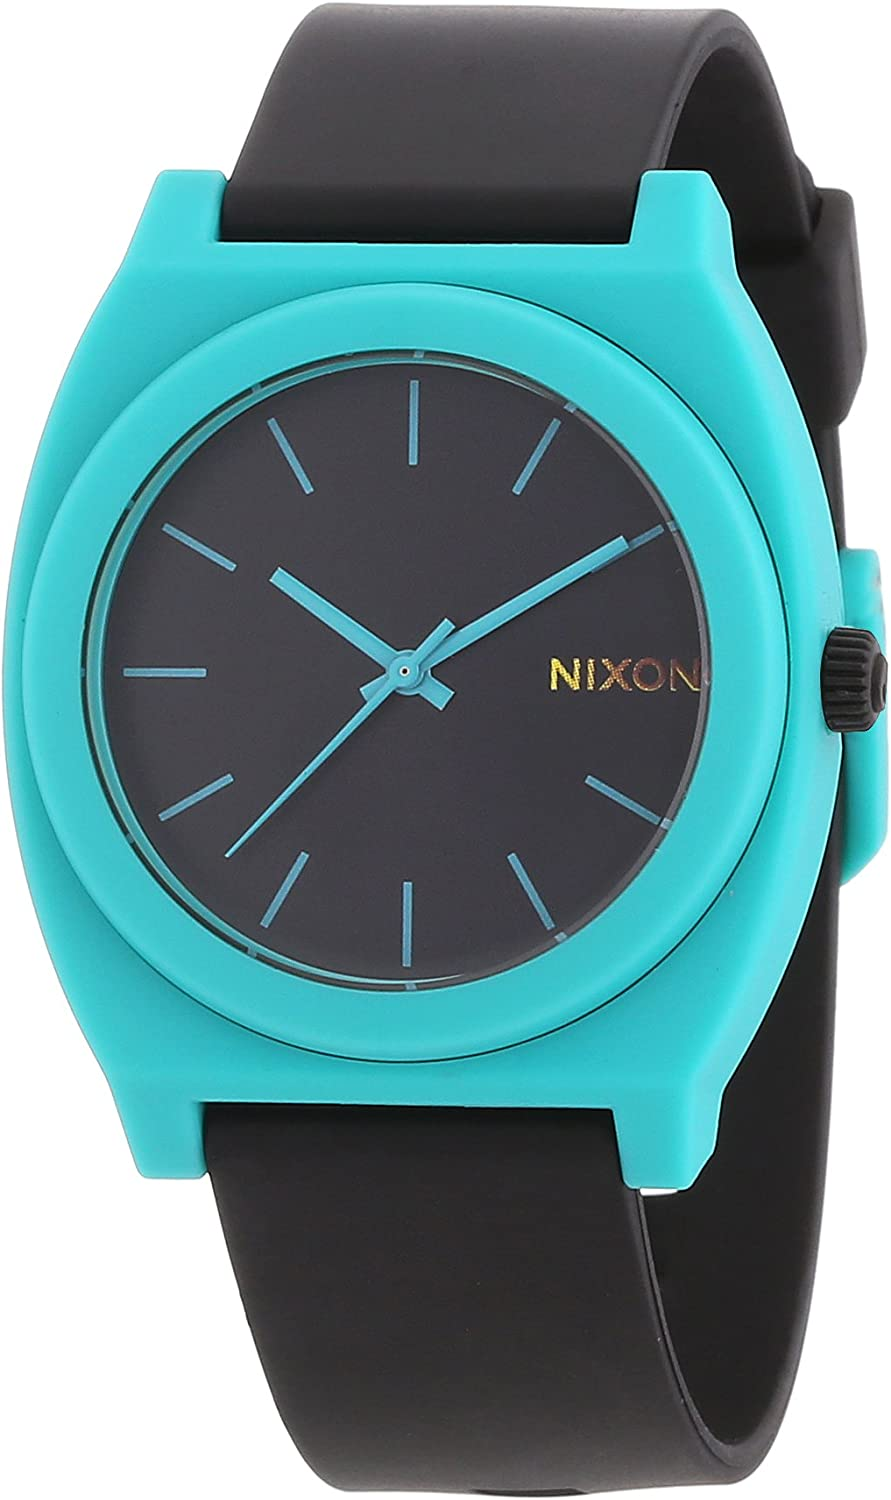 Nixon Time Teller P -Spring 2017- Black/Teal